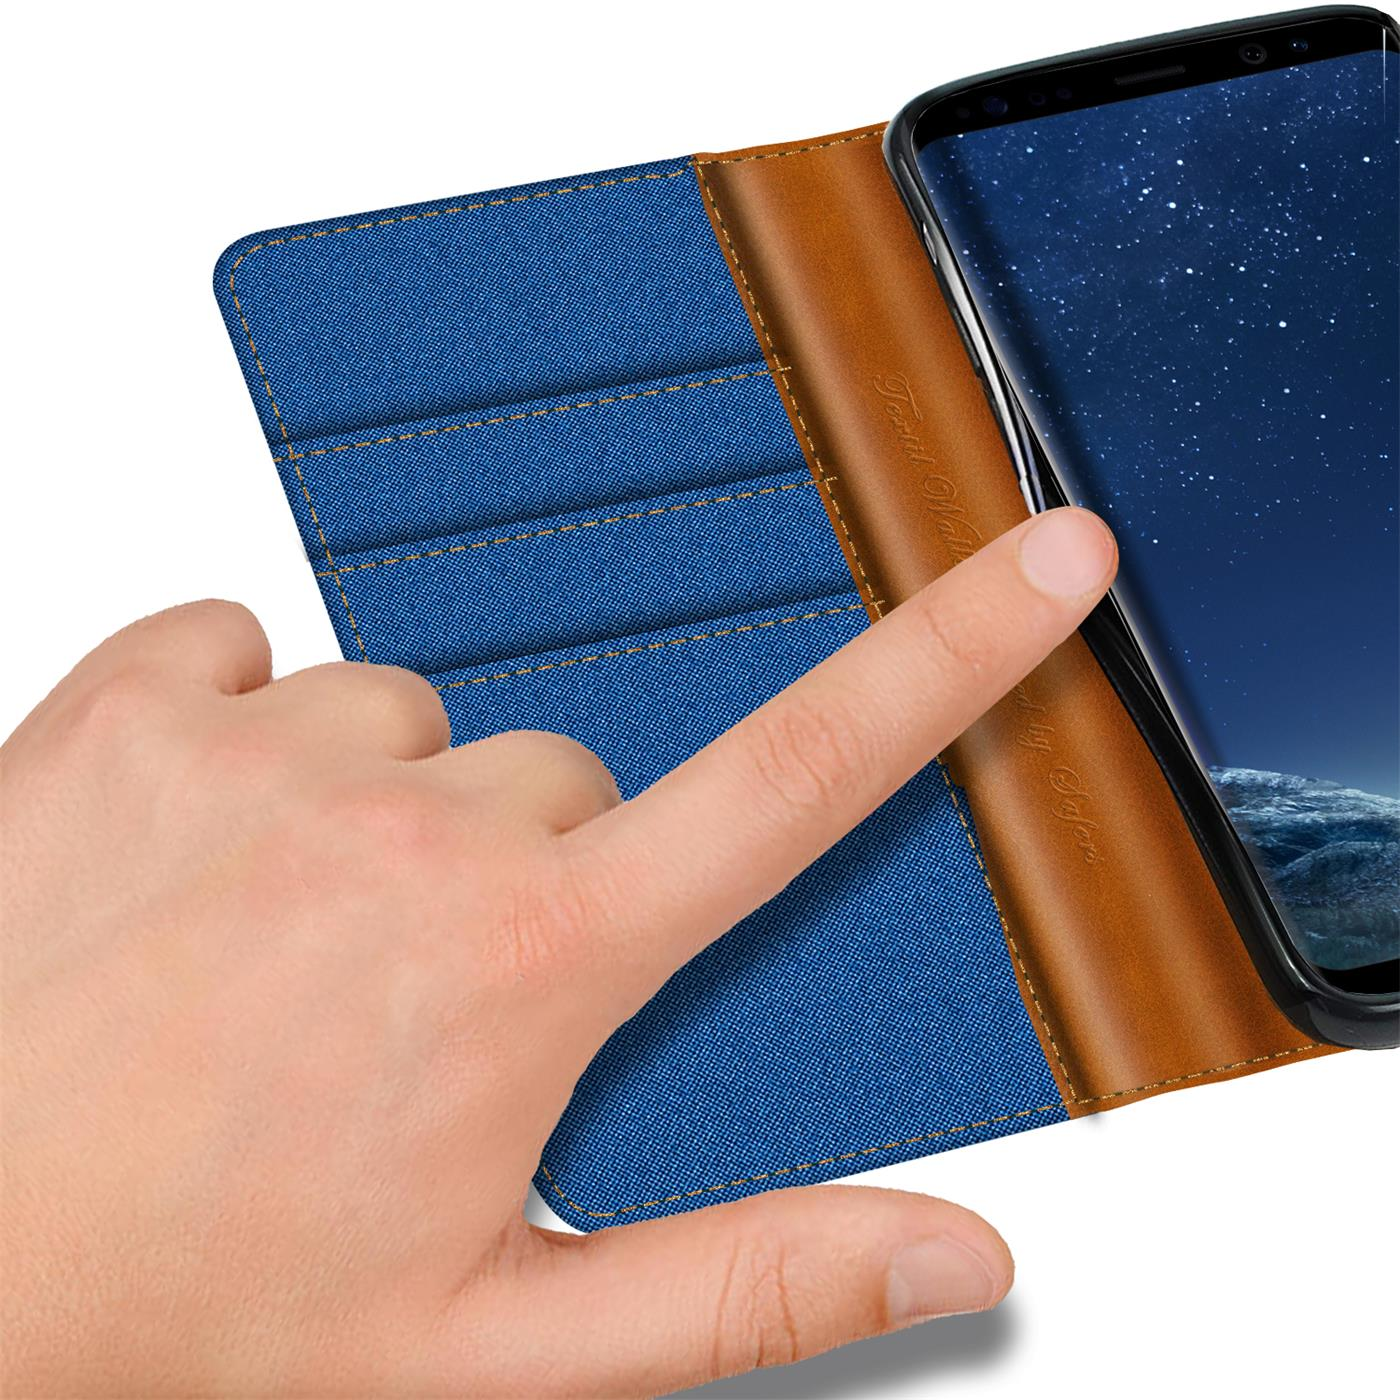 Samsung-Galaxy-S8-Plus-Phone-PU-Leather-Magnetic-Flip-Case-Wallet-Denim-Cover thumbnail 24